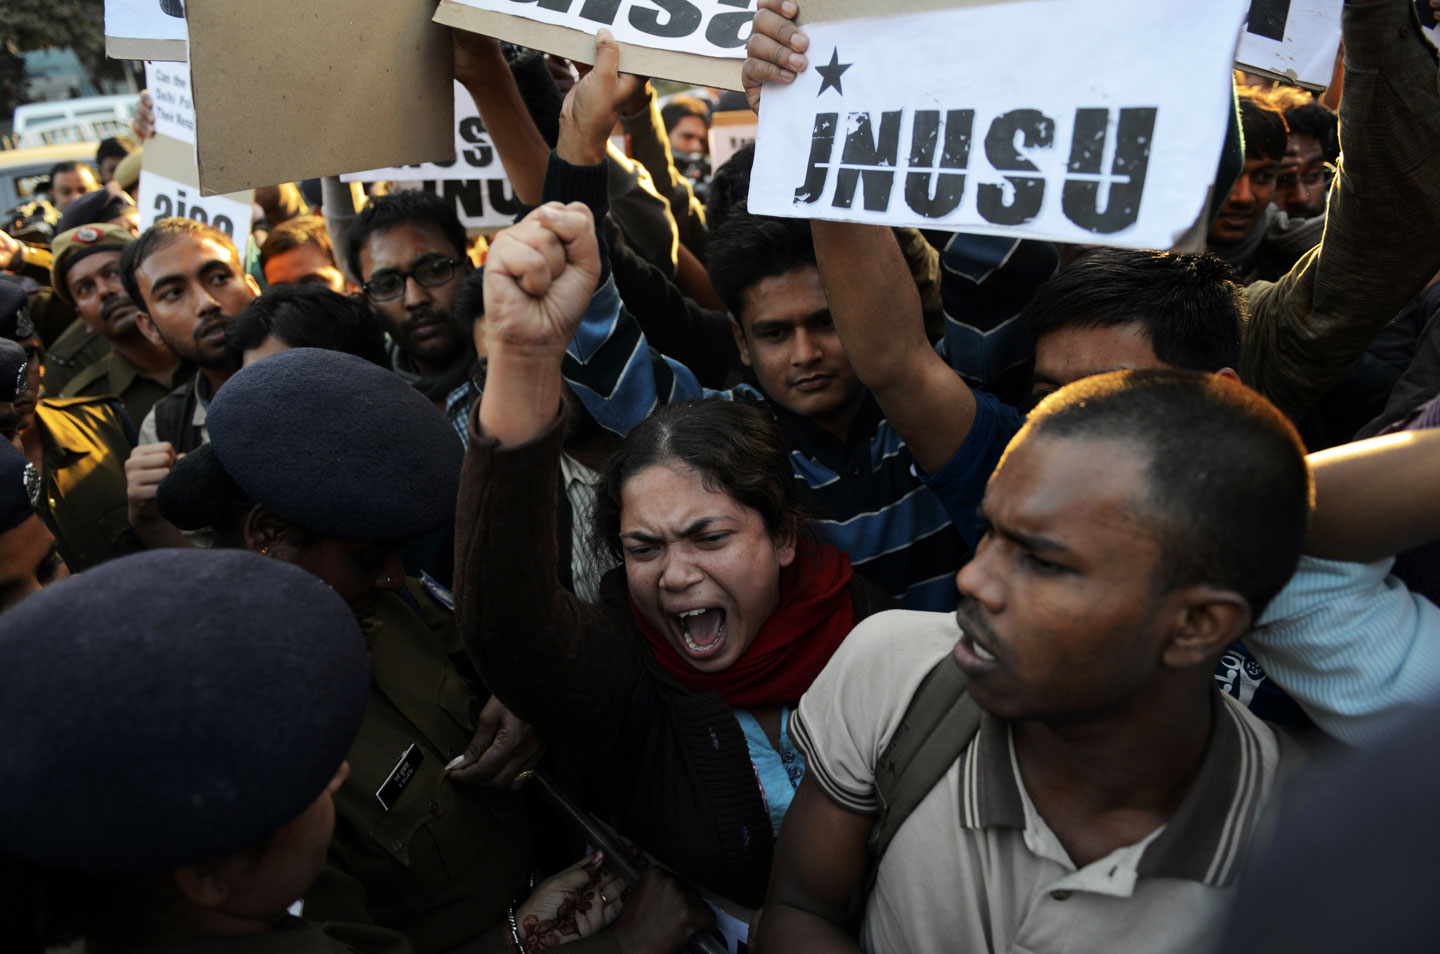 New Delhi residents take part in a protest against the alleged rape of a passenger by an Uber driver on December 7, 2014.